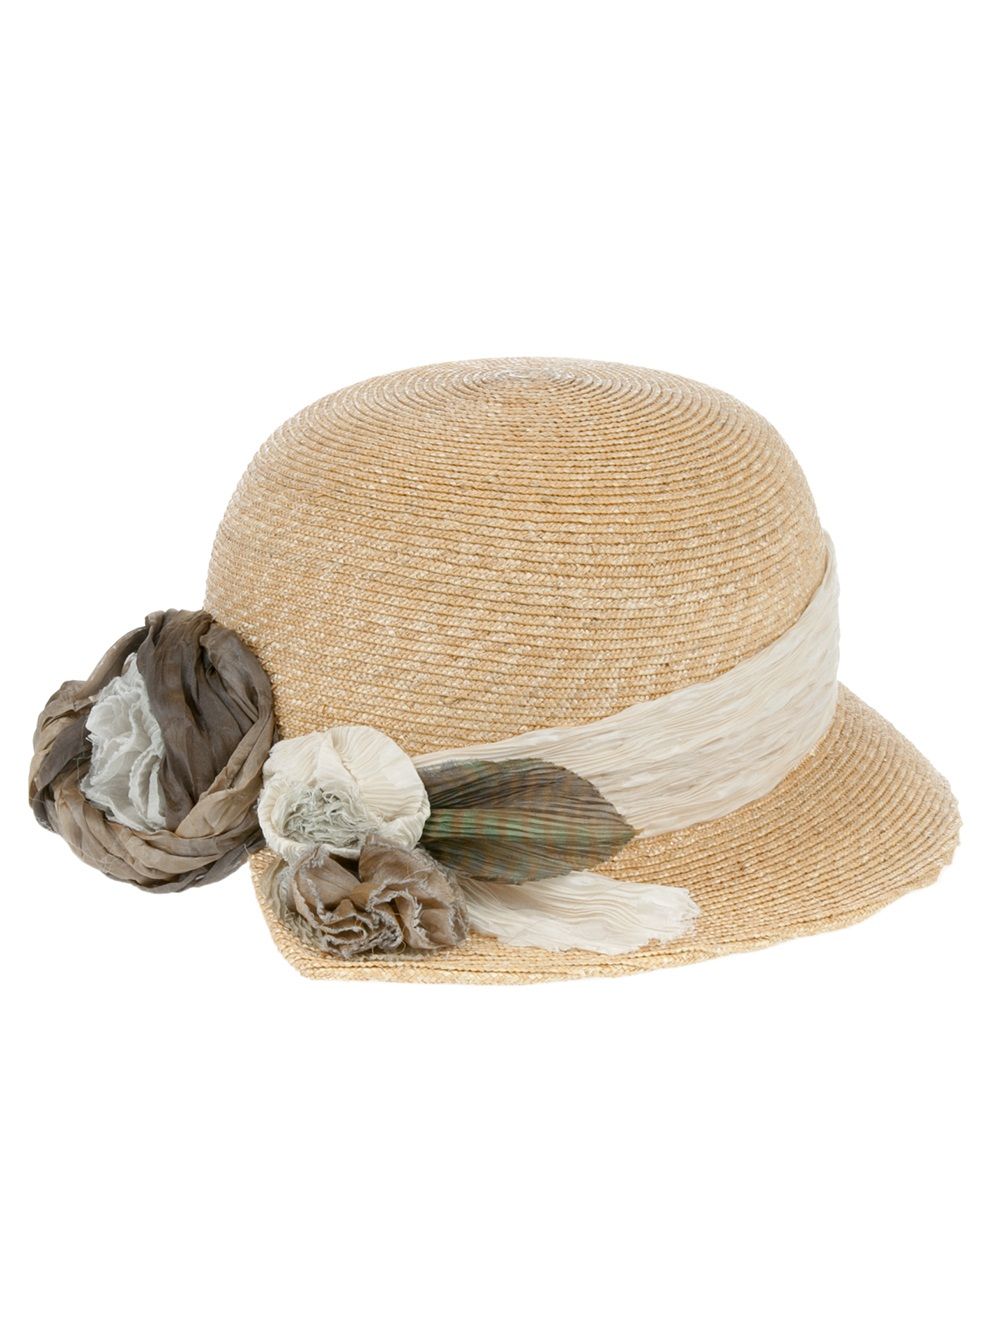 Lyst - Grevi Summer Hat in Natural 56b05f05b62